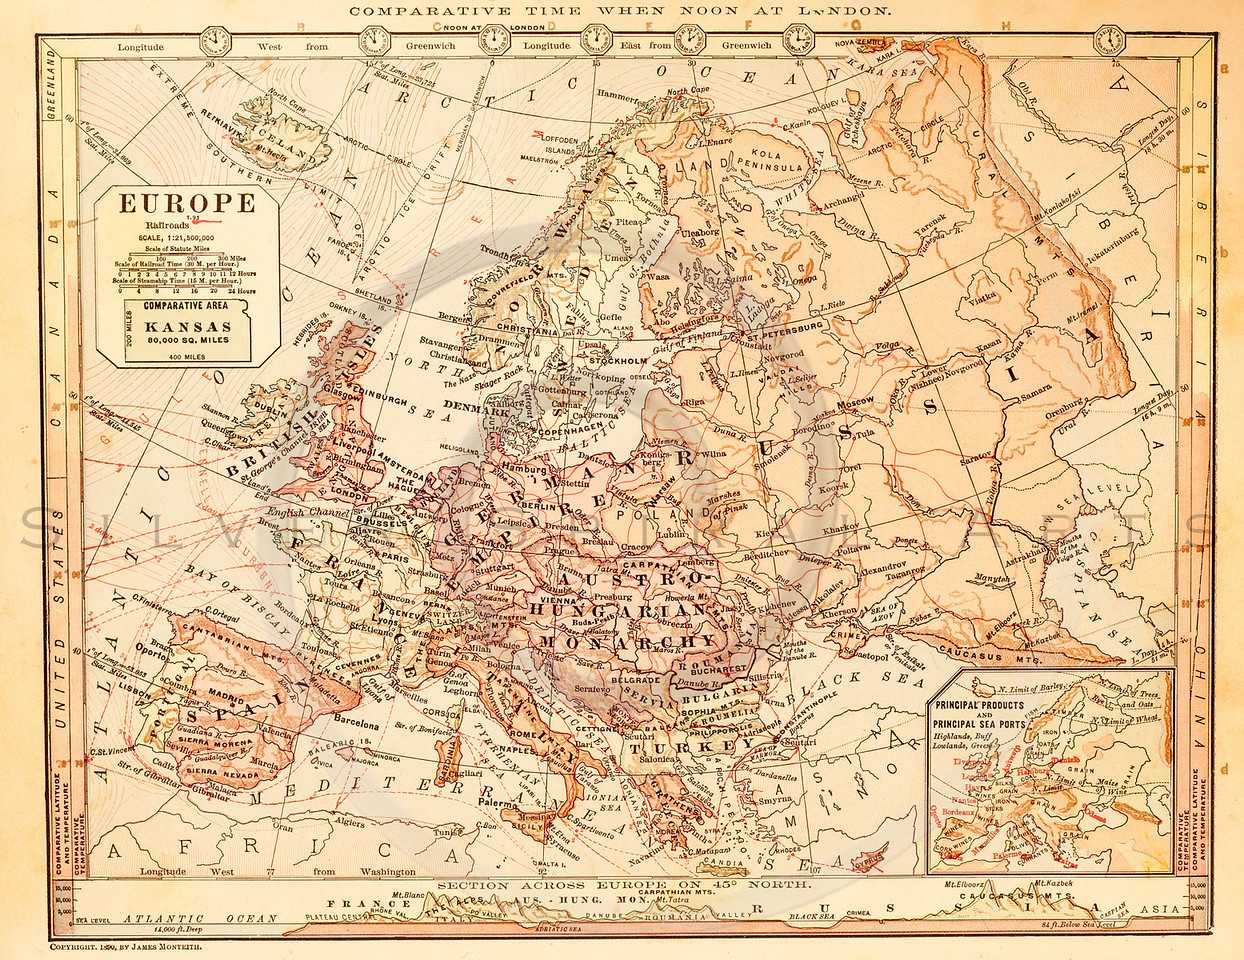 Royalty free stock vintage illustrations photo keywords maps vintage illustration of europe map antique digital download of old print europe russia gumiabroncs